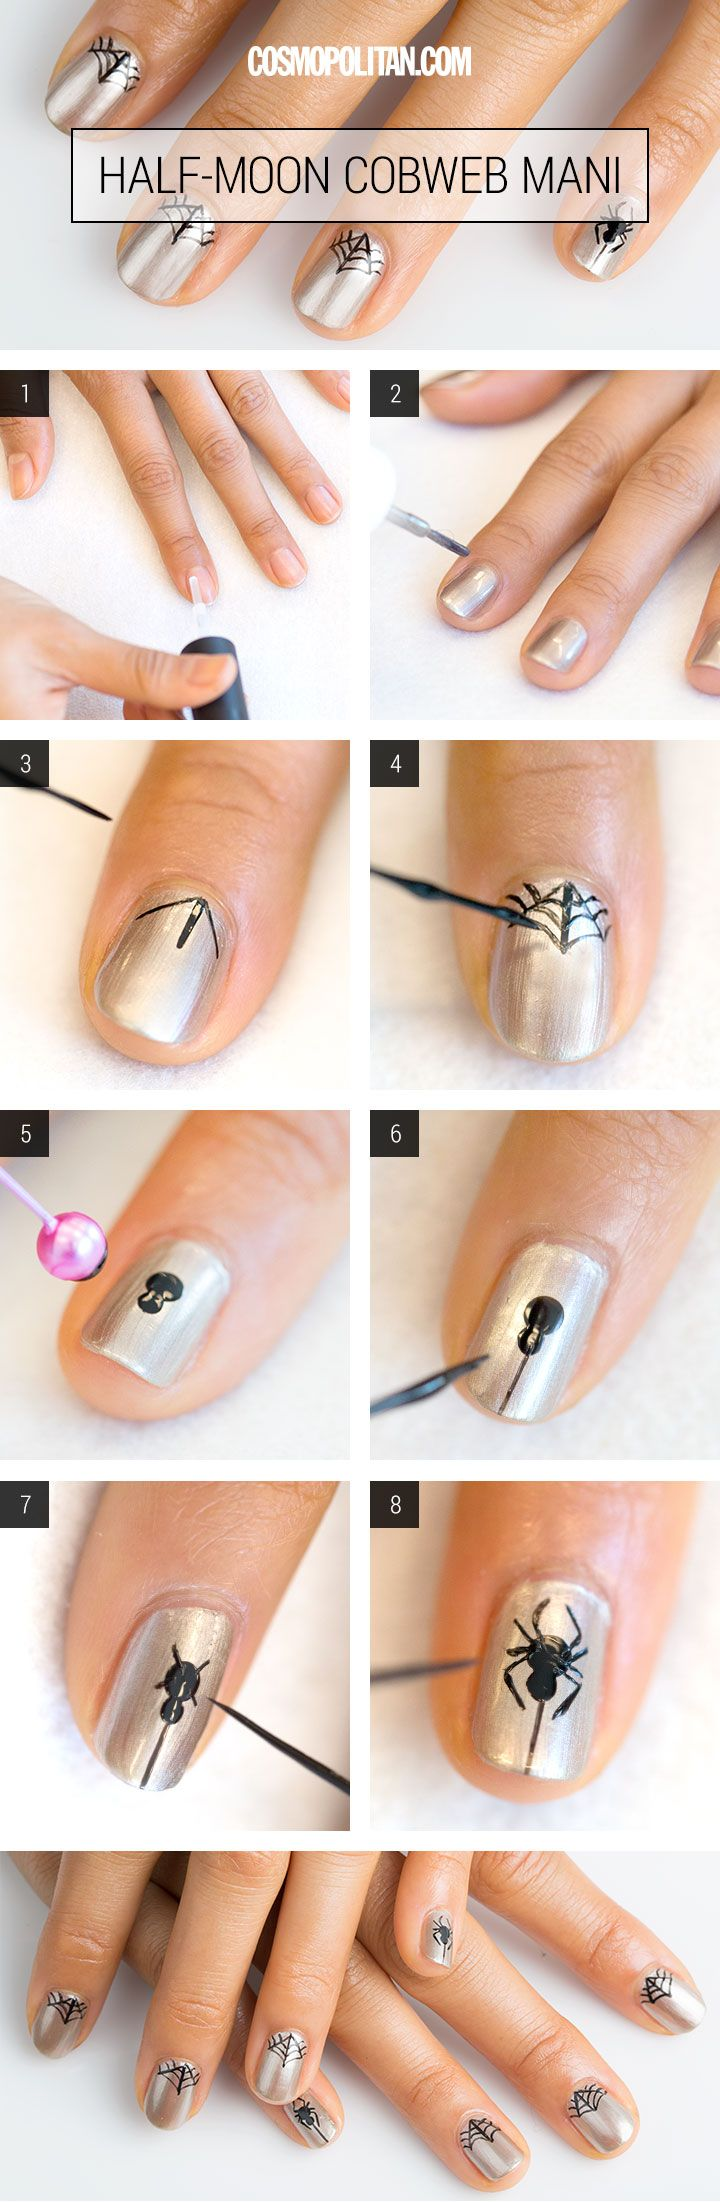 Nail Art How To For Halloween